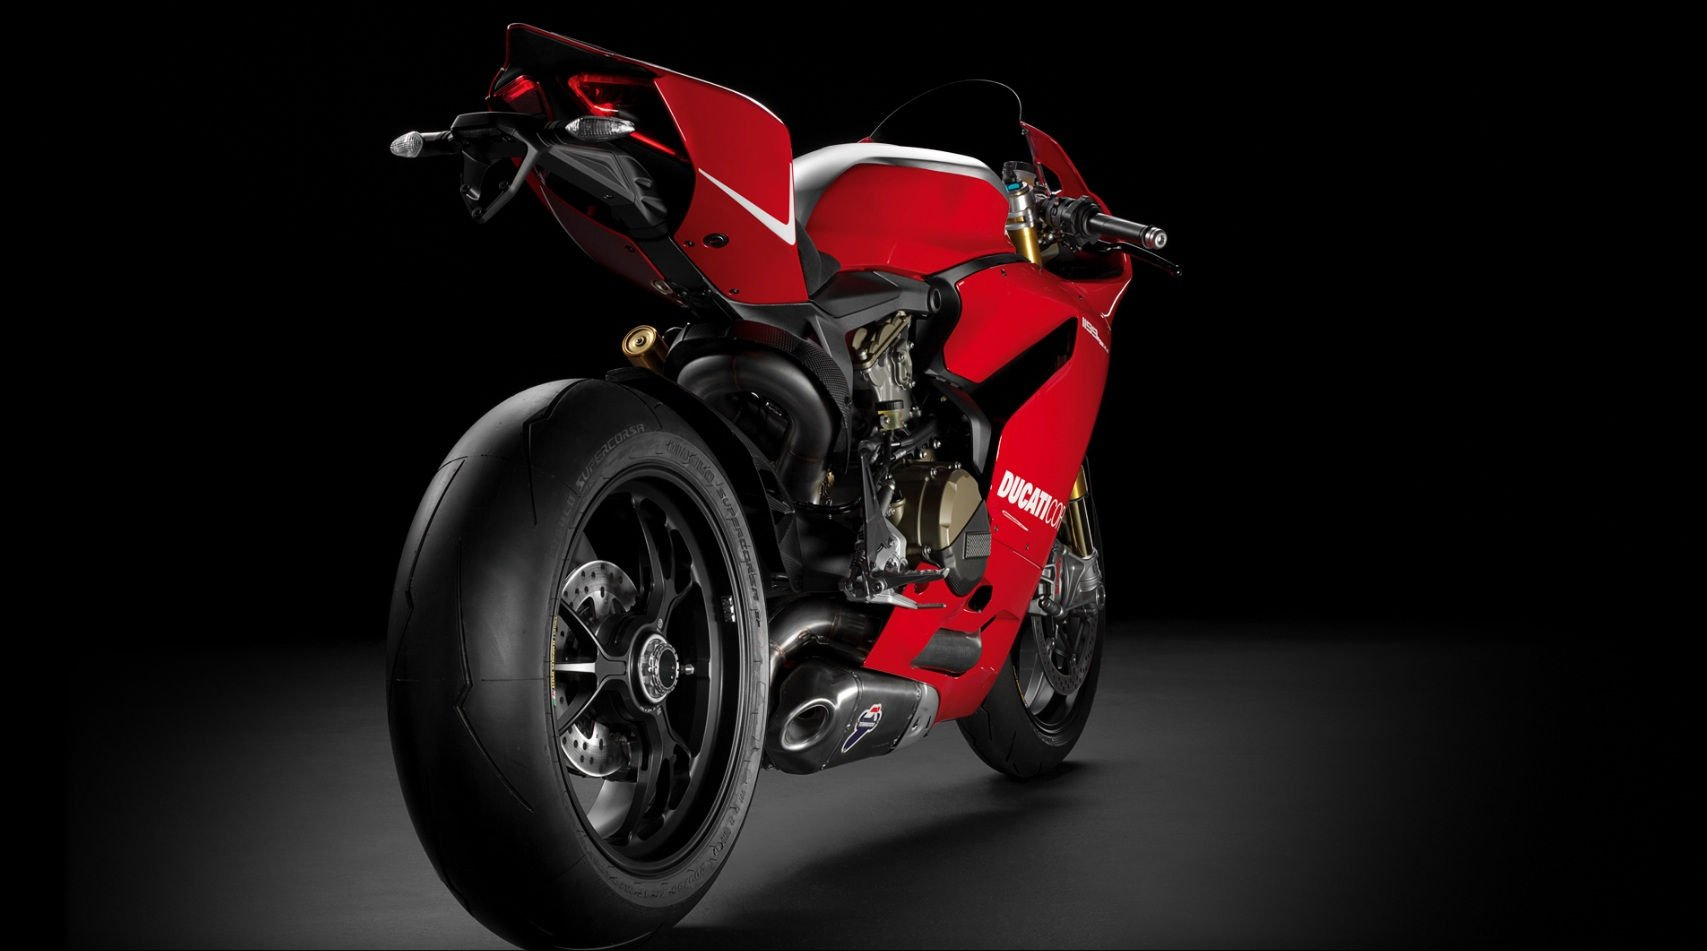 http://www.unfinishedman.com/wp-content/uploads/2012/11/Ducati-1199-Panigale-R-4.jpg